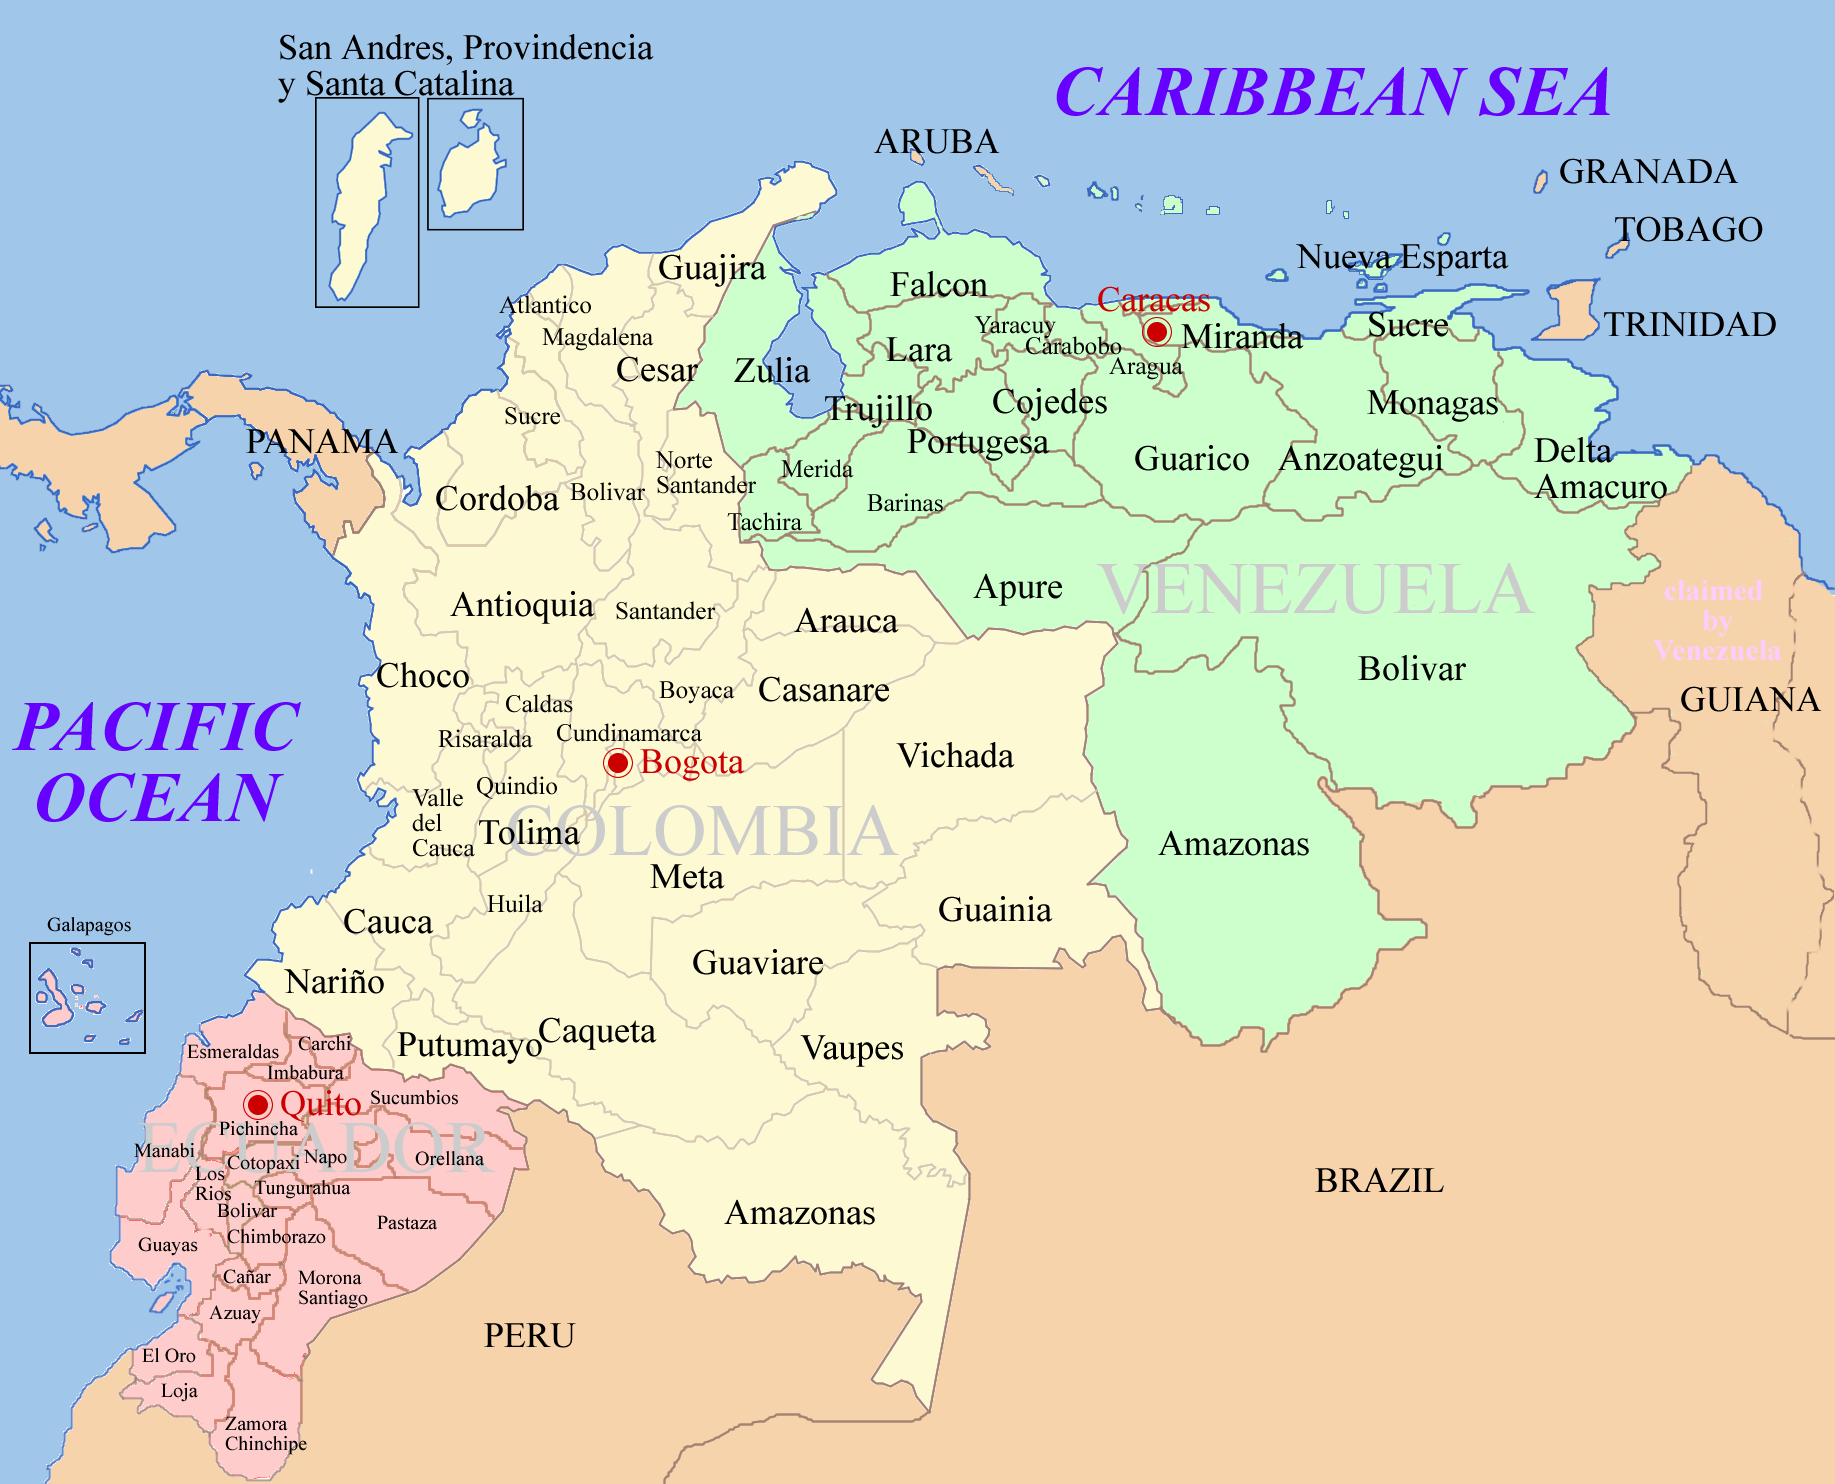 Map Of Ecuador And Colombia File:Ecuador Colombia Venezuela map.png   Wikimedia Commons